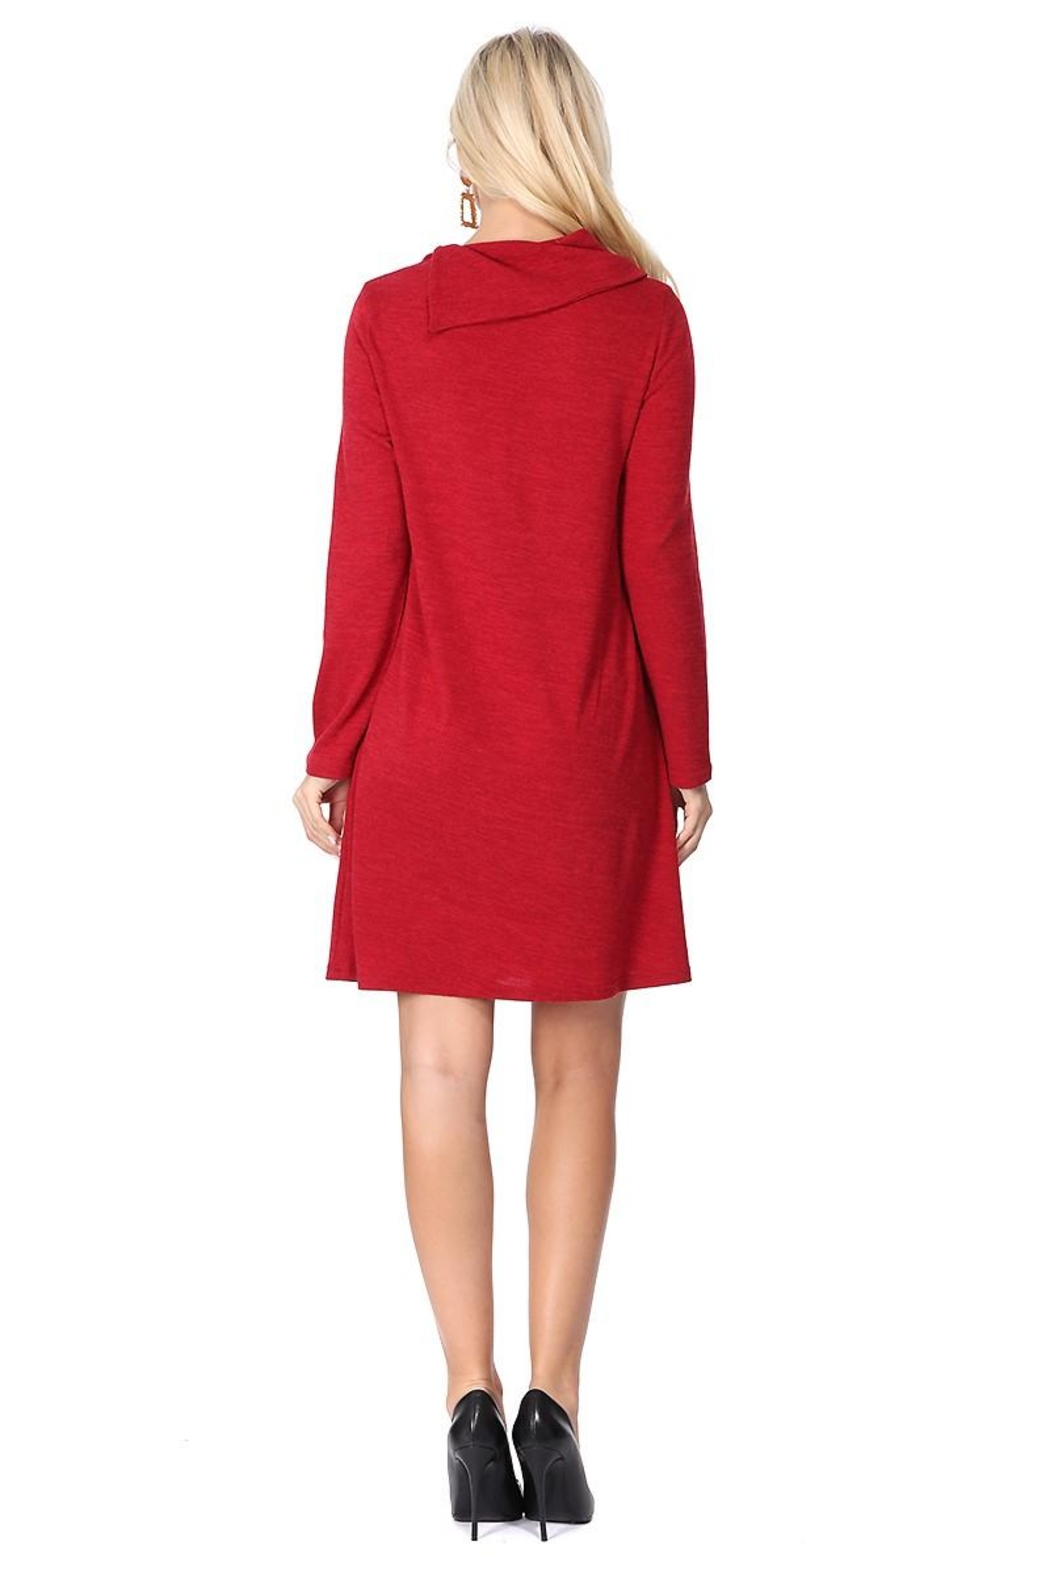 Aryeh Cherry Cowl Neck Dress - Back Cropped Image